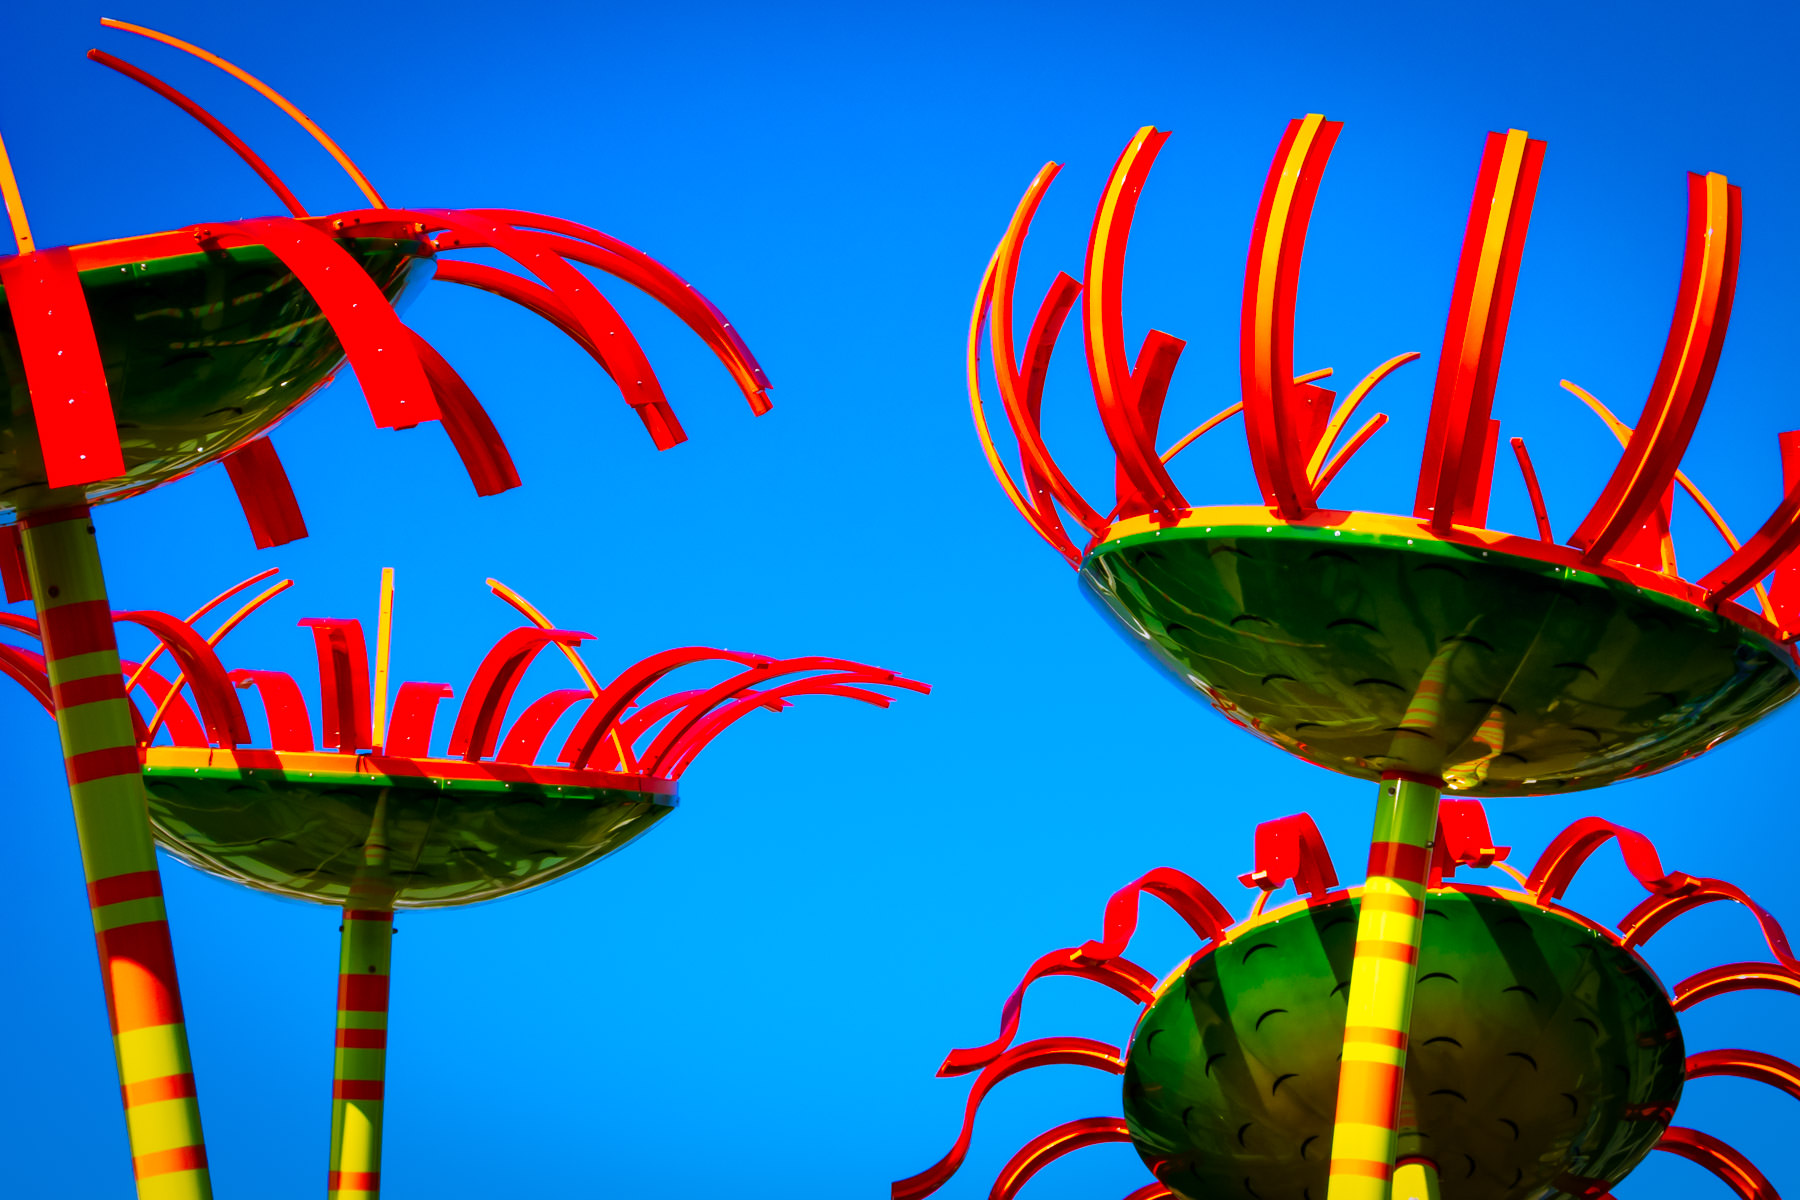 Detail of artist Dan Corson's Sonic Bloom, a sculpture in the Seattle Center adjacent to the Space Needle that react to viewers' movement by emitting various harmonic tones.